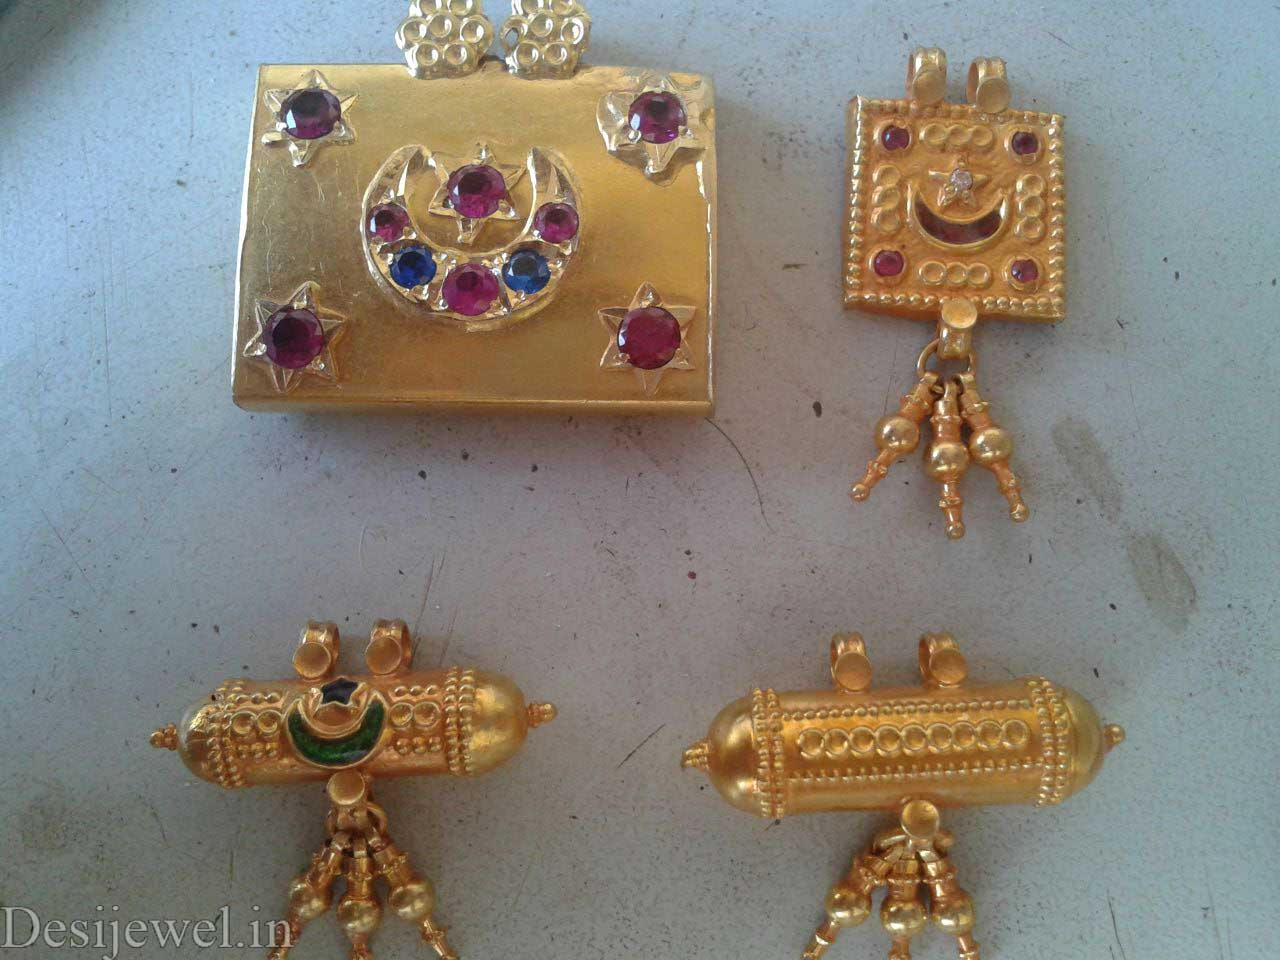 Marwadi Rajasthani Desi gold Gala-Pendal And Weight is 4-7 gm